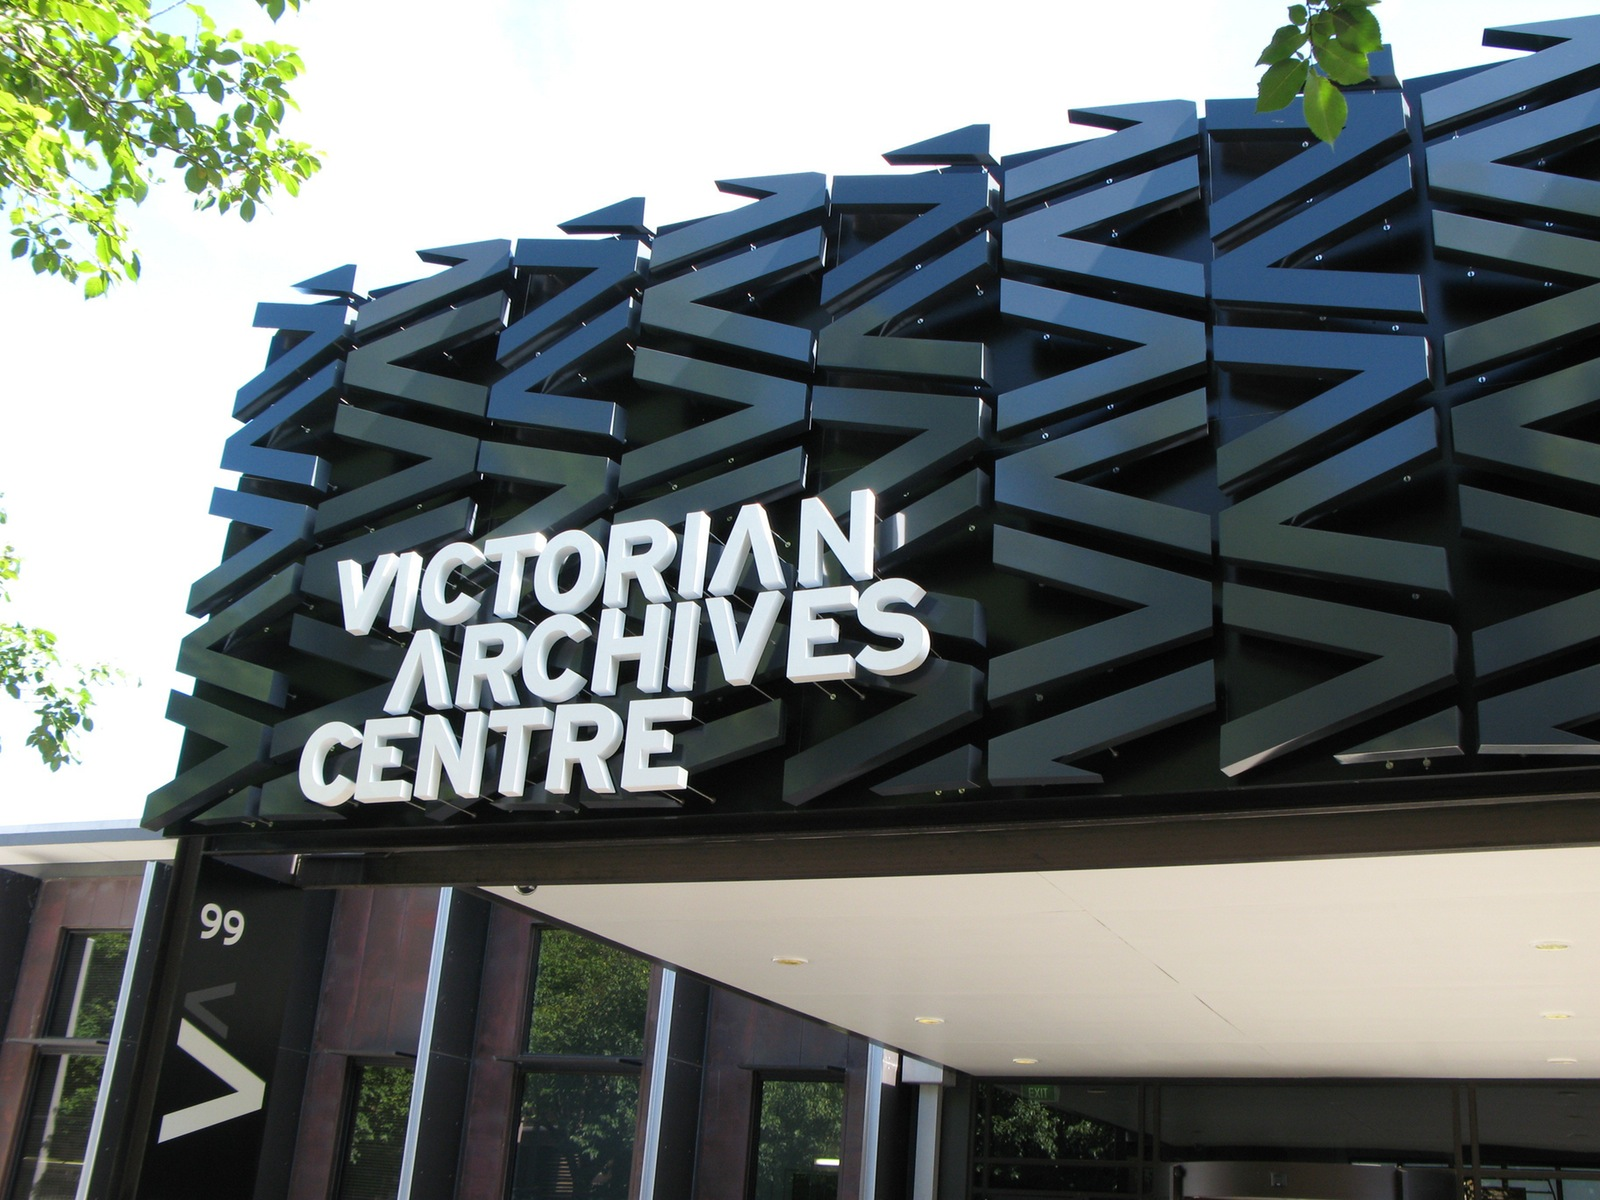 Victorian Archives Centre